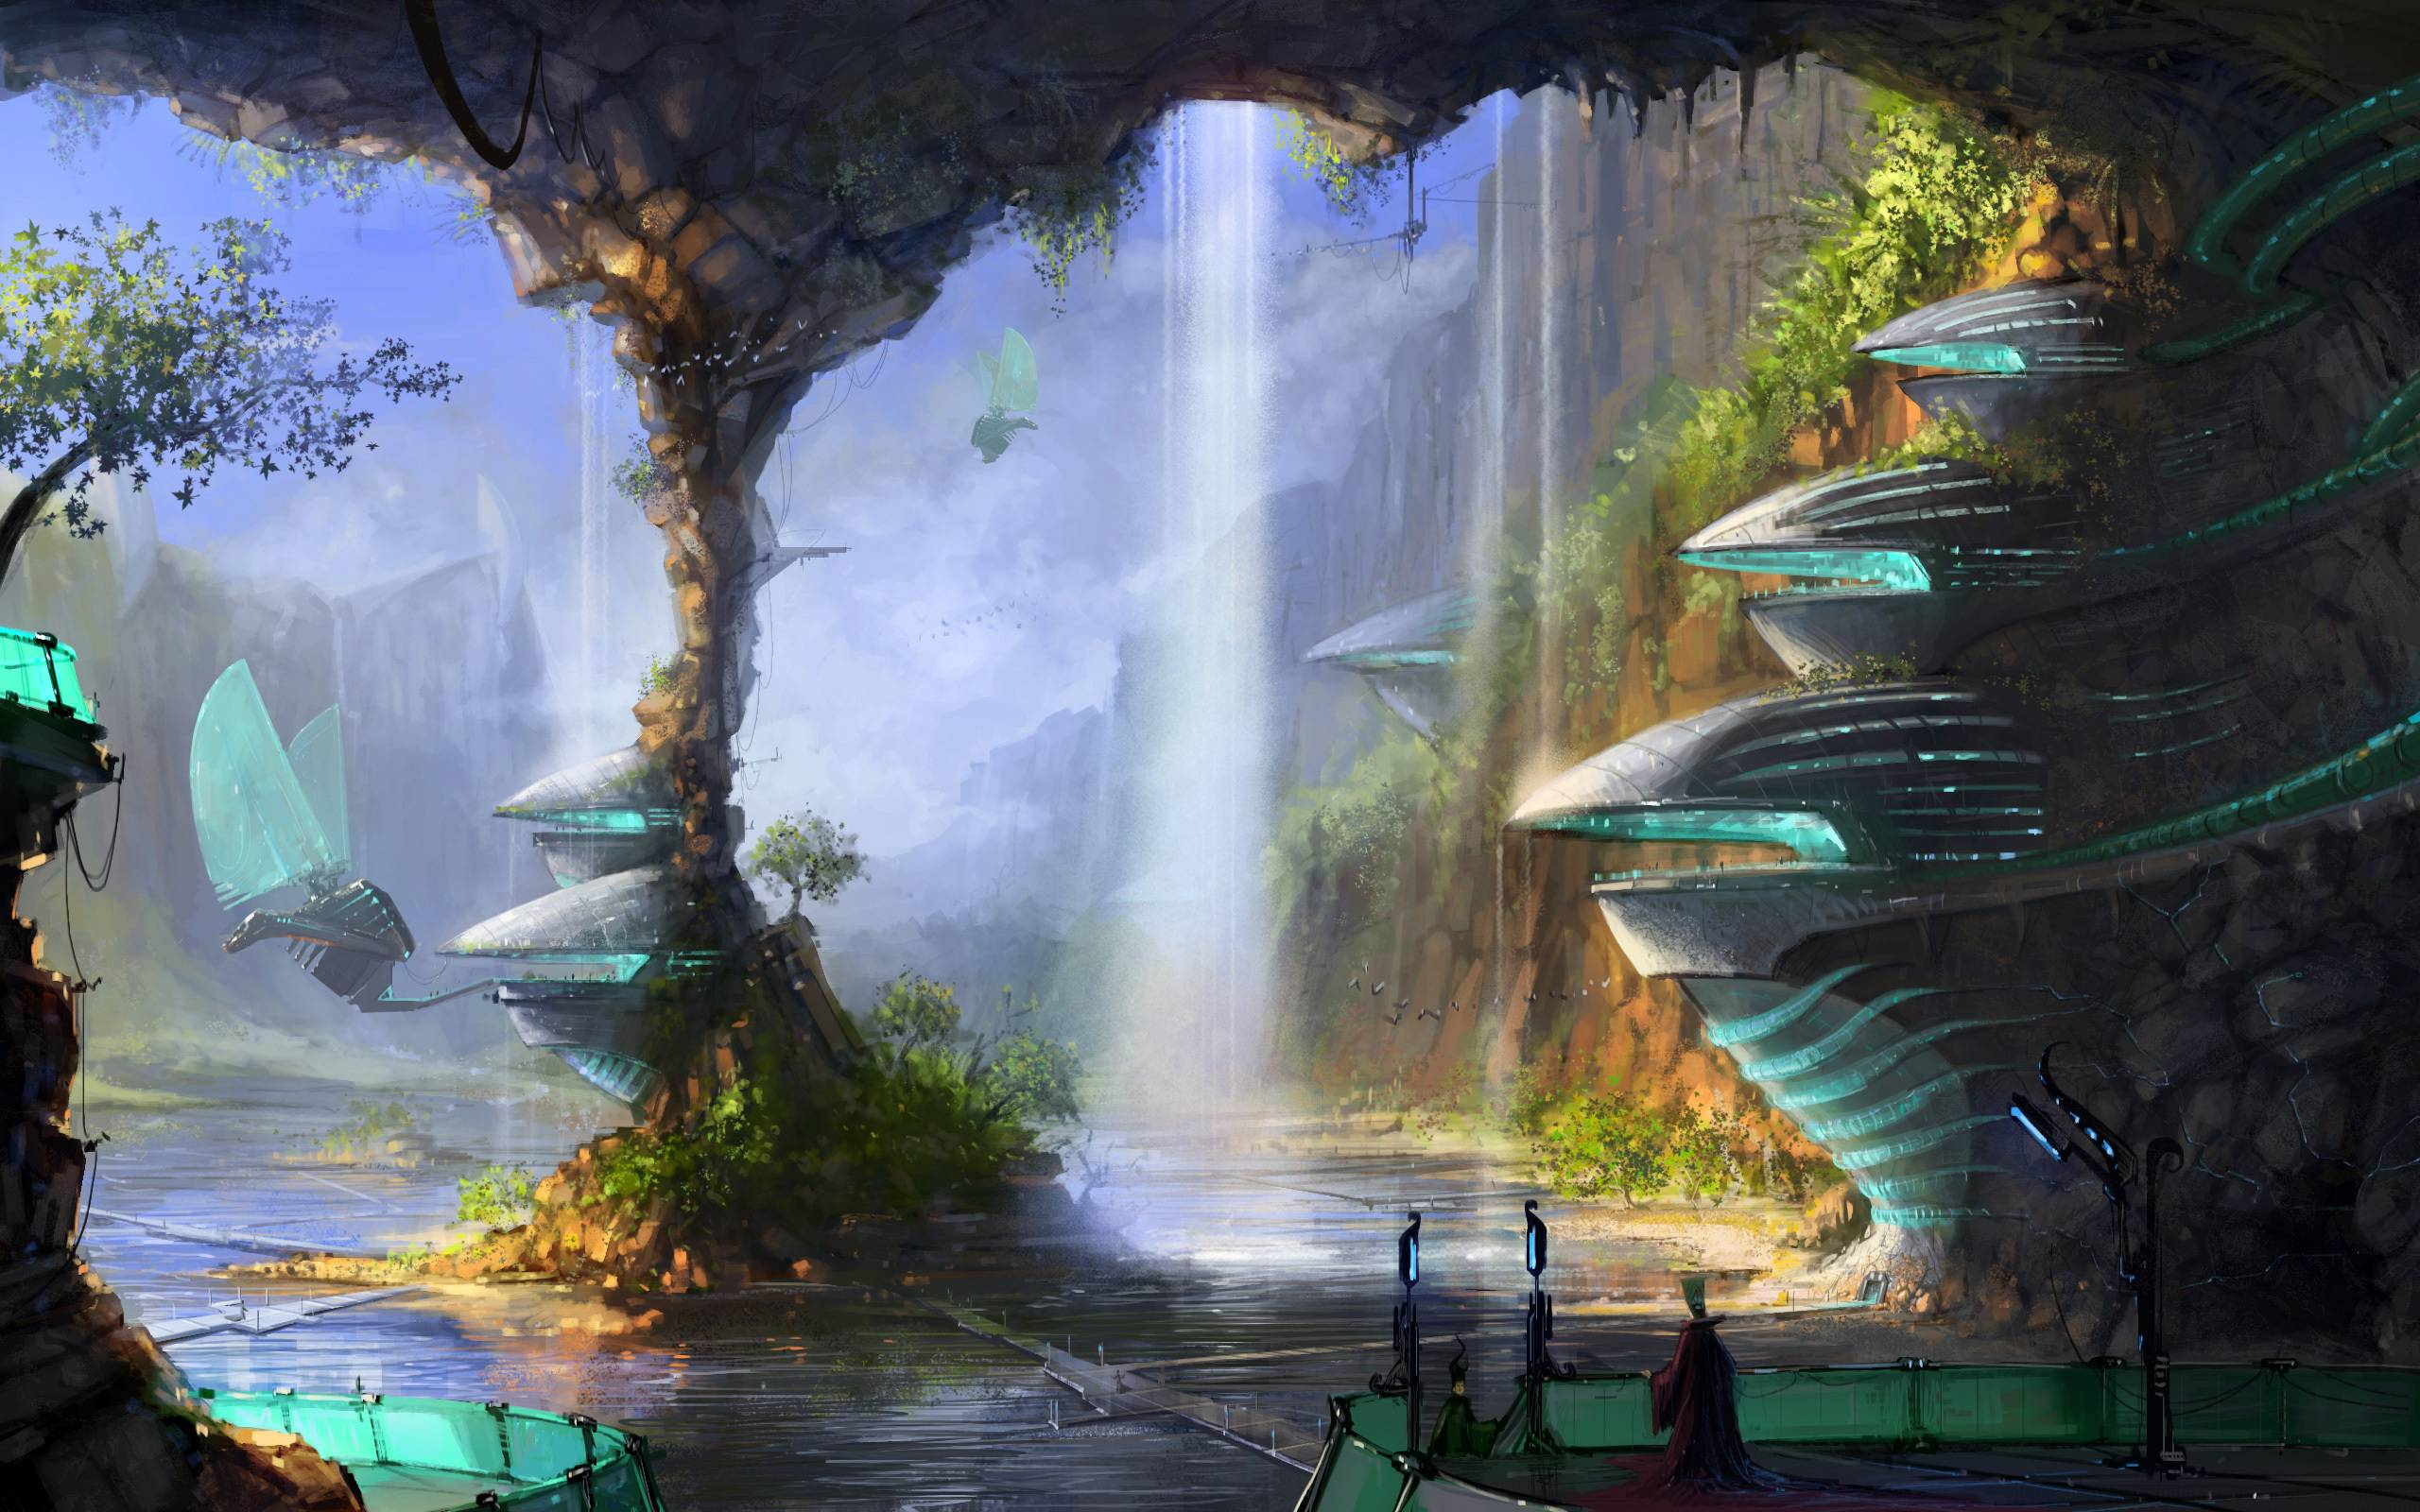 Abstract Fantasy Land Landscape Wallpapers